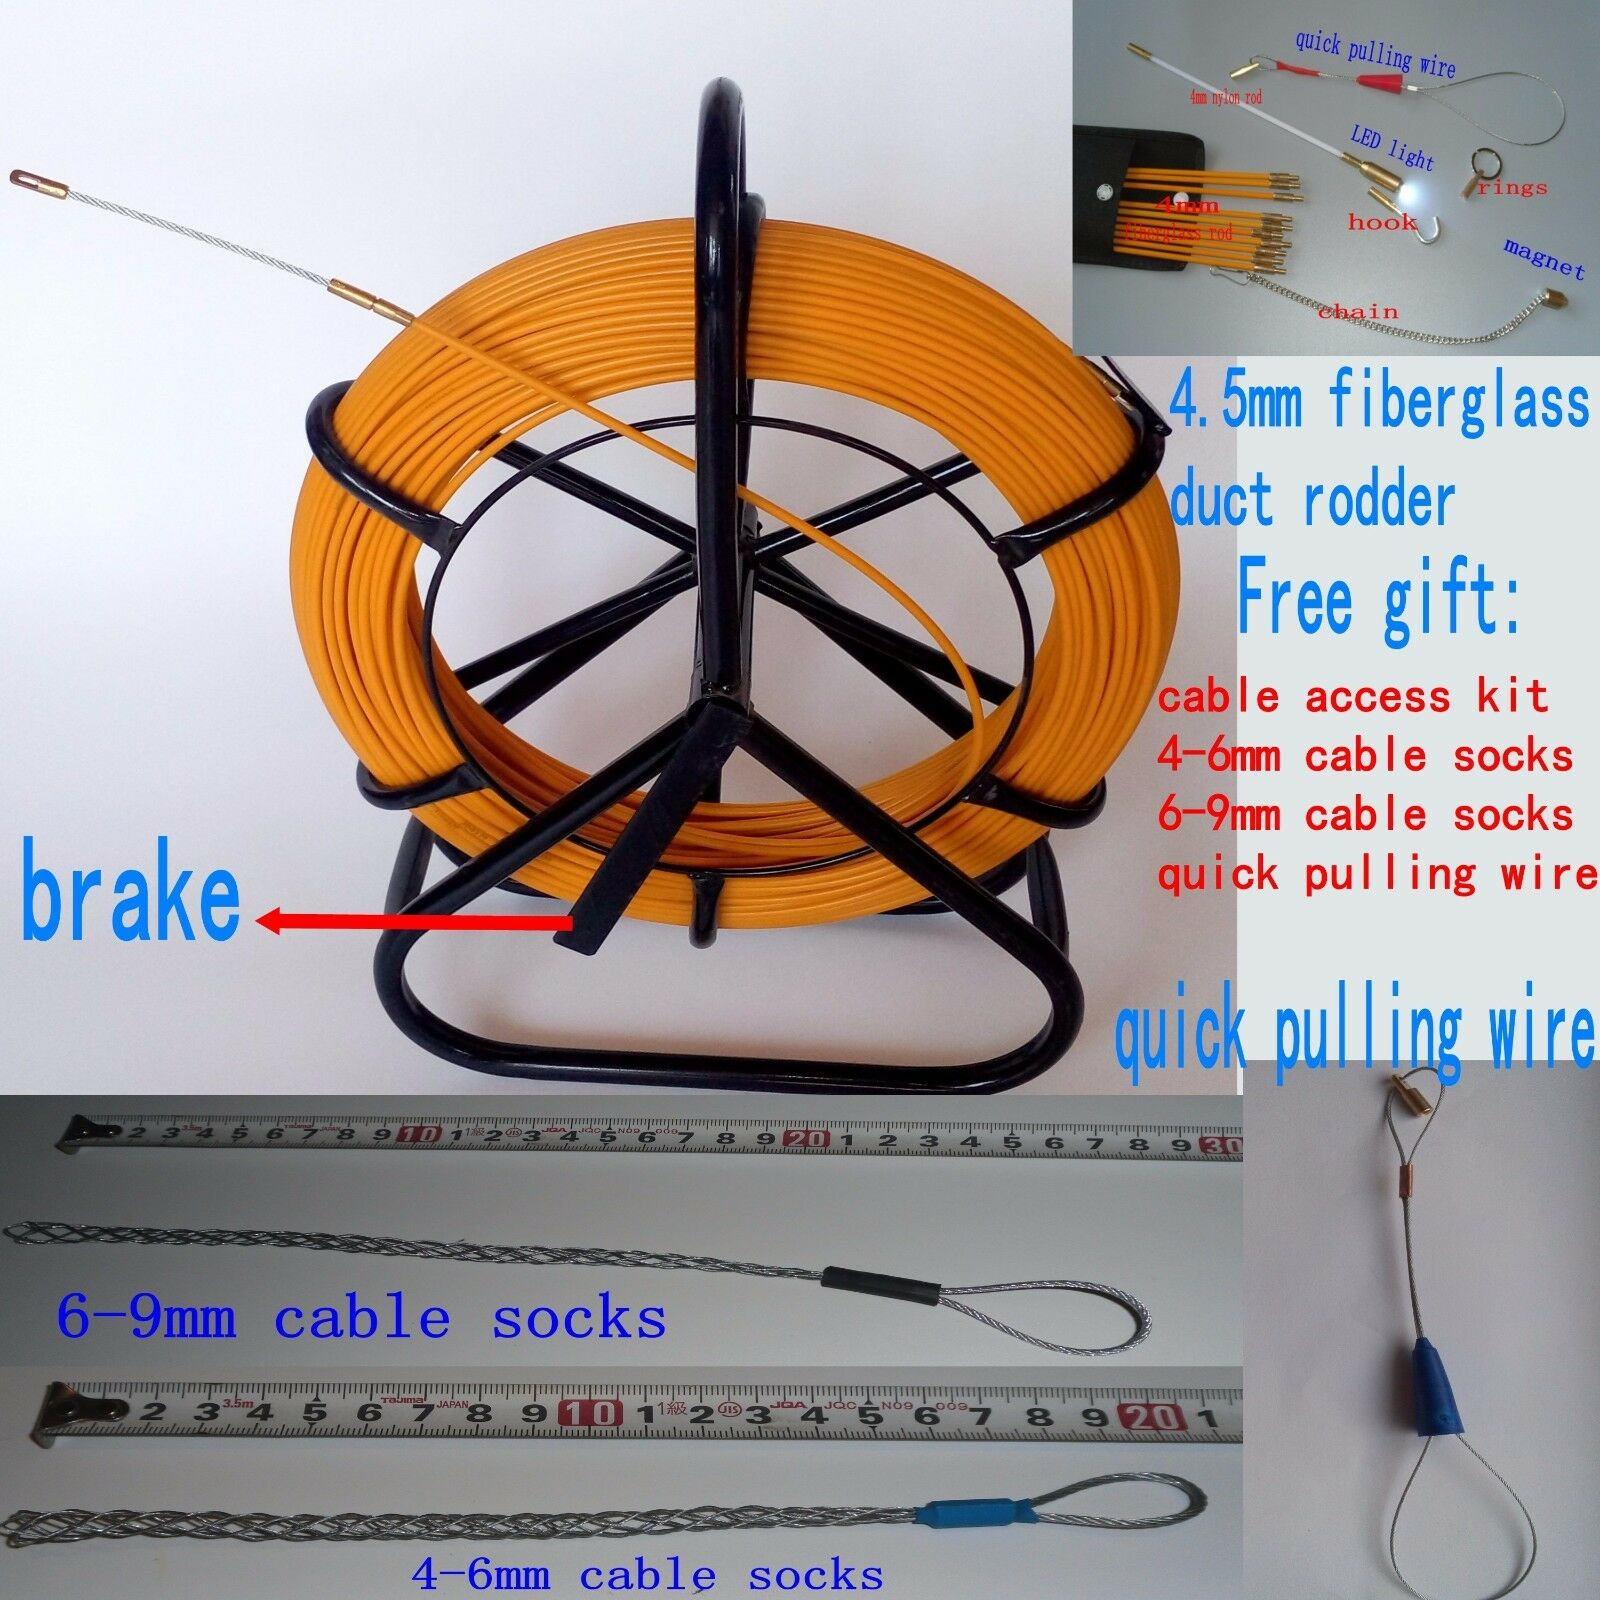 FIBERGLASS DUCT RODDER fish tape Cable Running Rod wire puller push ...